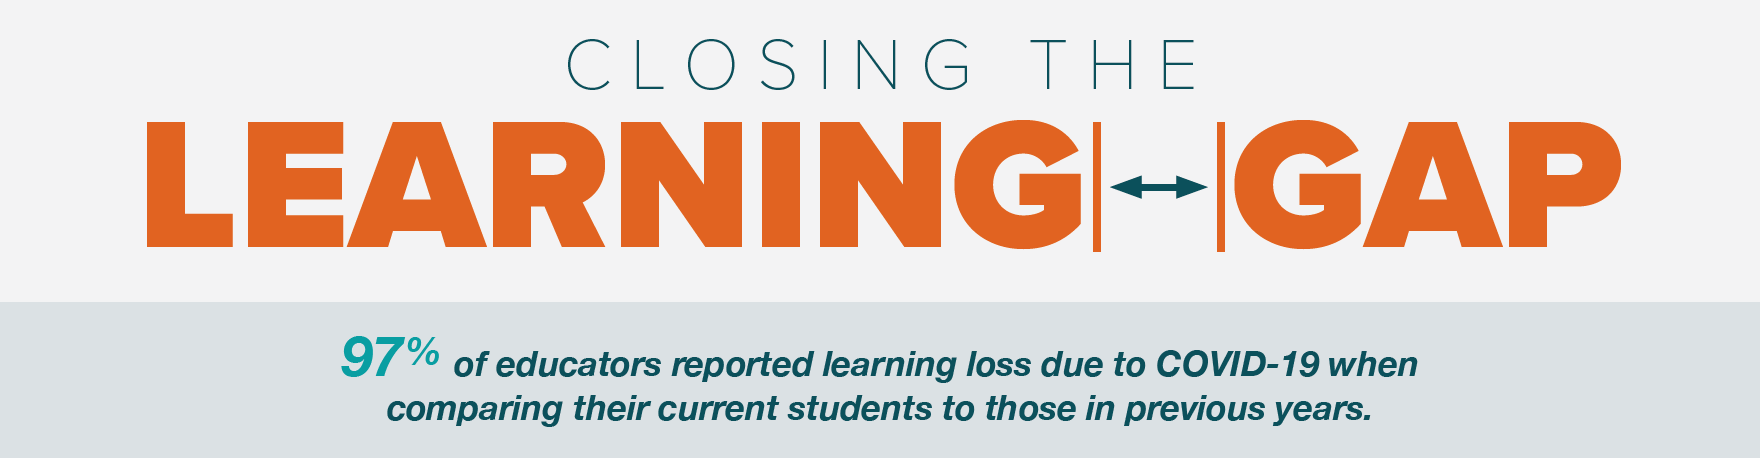 learning gap infographic